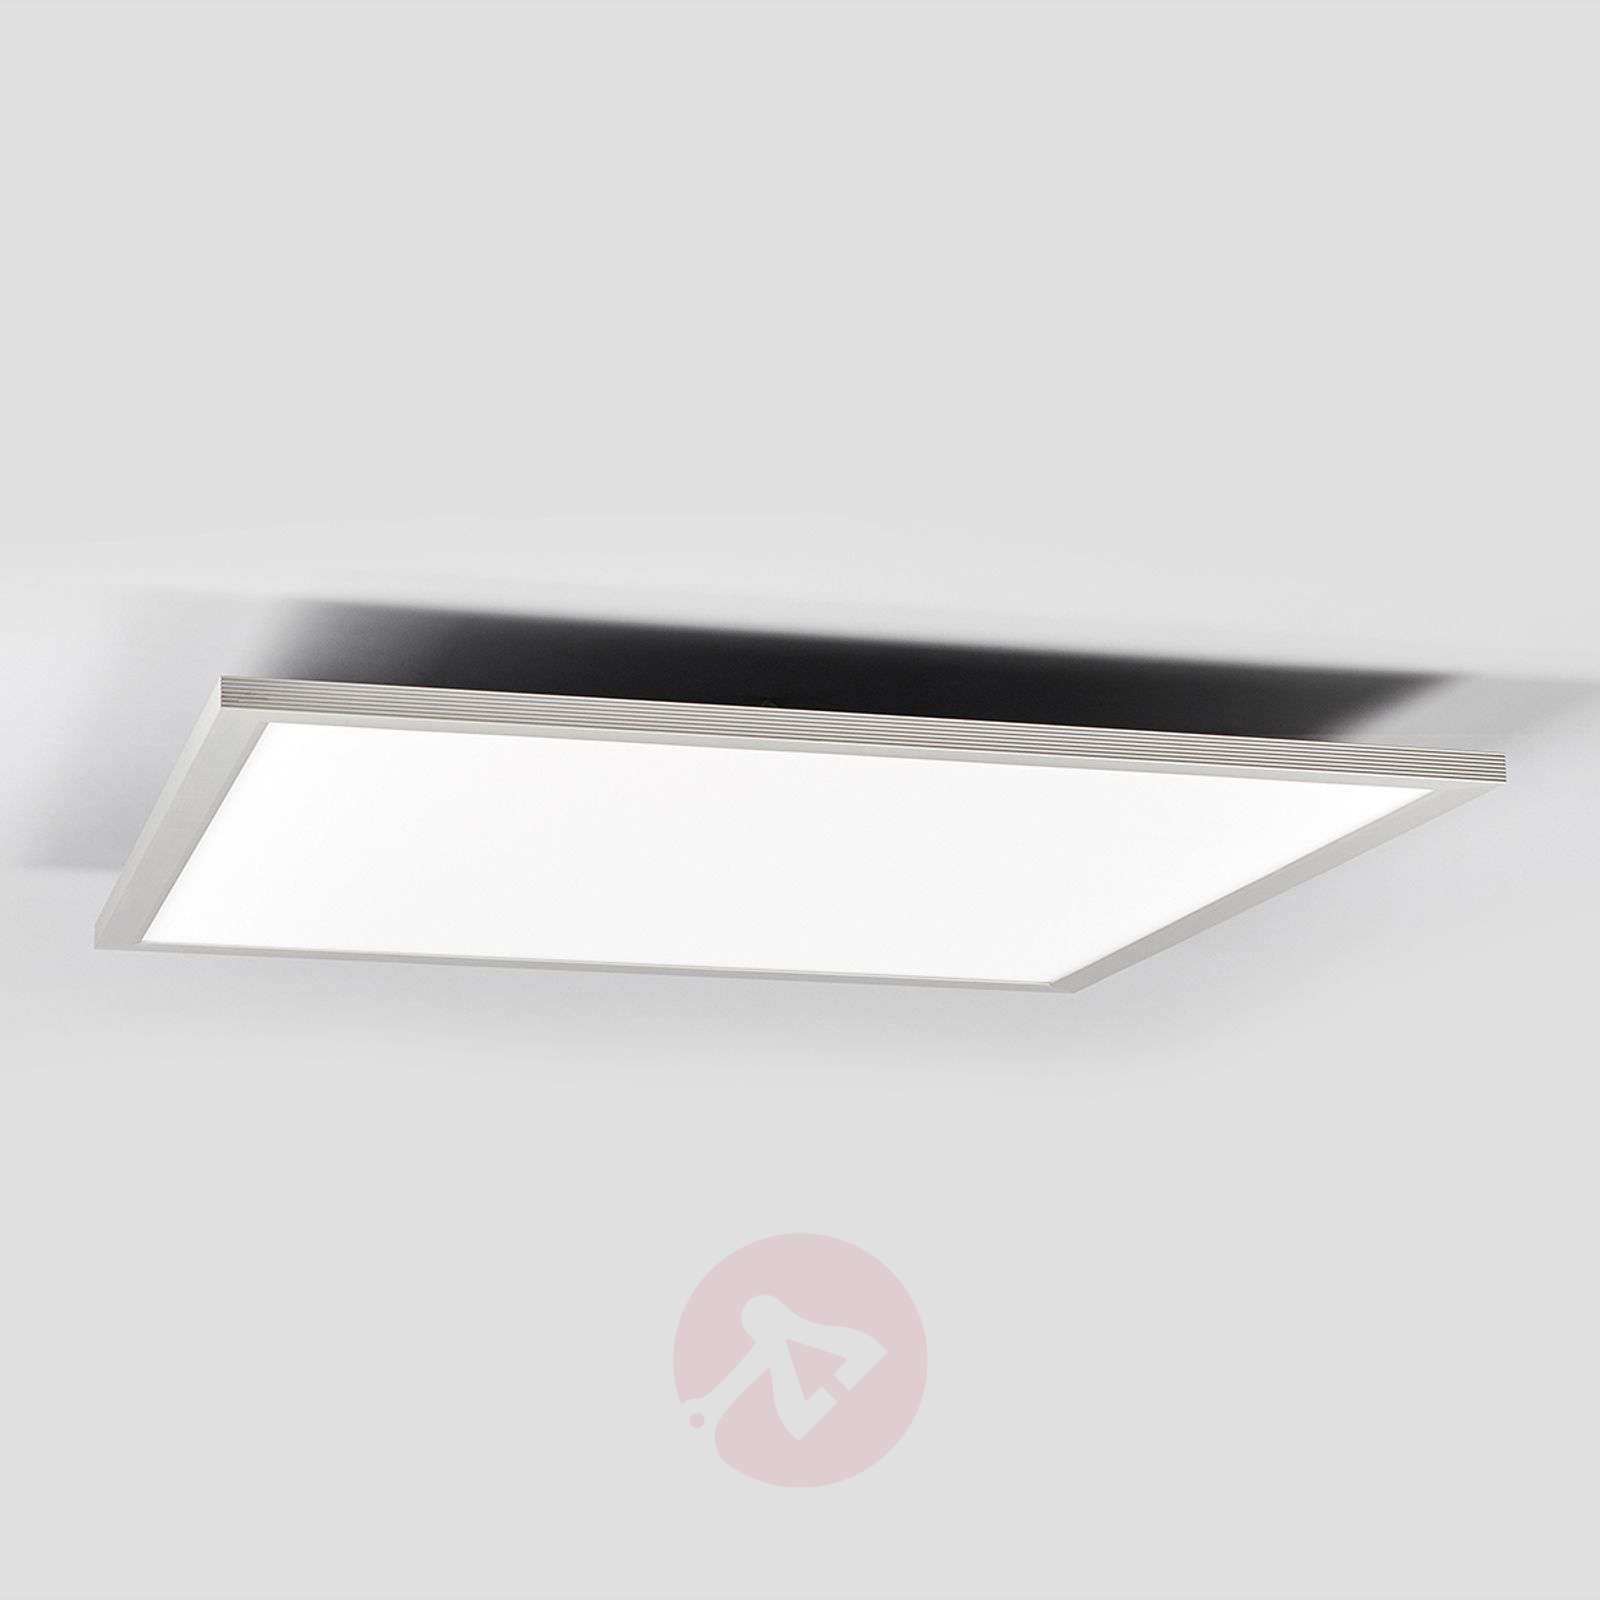 All-in-One-LED-Panel Edge-3002134X-01